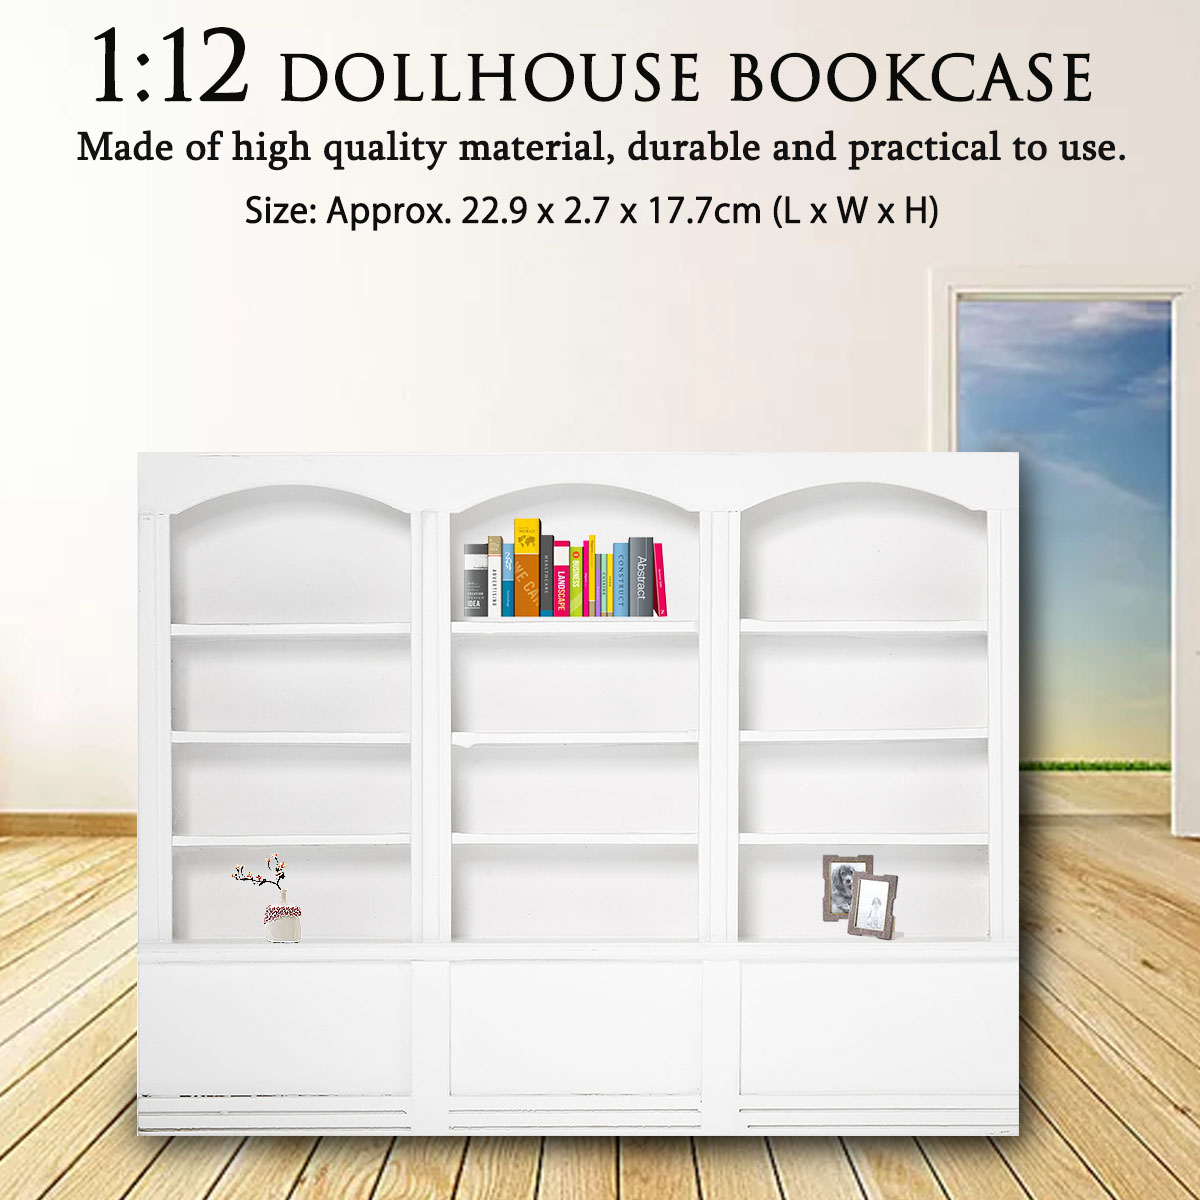 Us 10 9 1 12 Multifunction Wood Cabinet Bookcase Dollhouse Miniature Furniture Kitchen Dining Display Shelf White 22 9x2 7x17 7 Cm In Furniture Toys